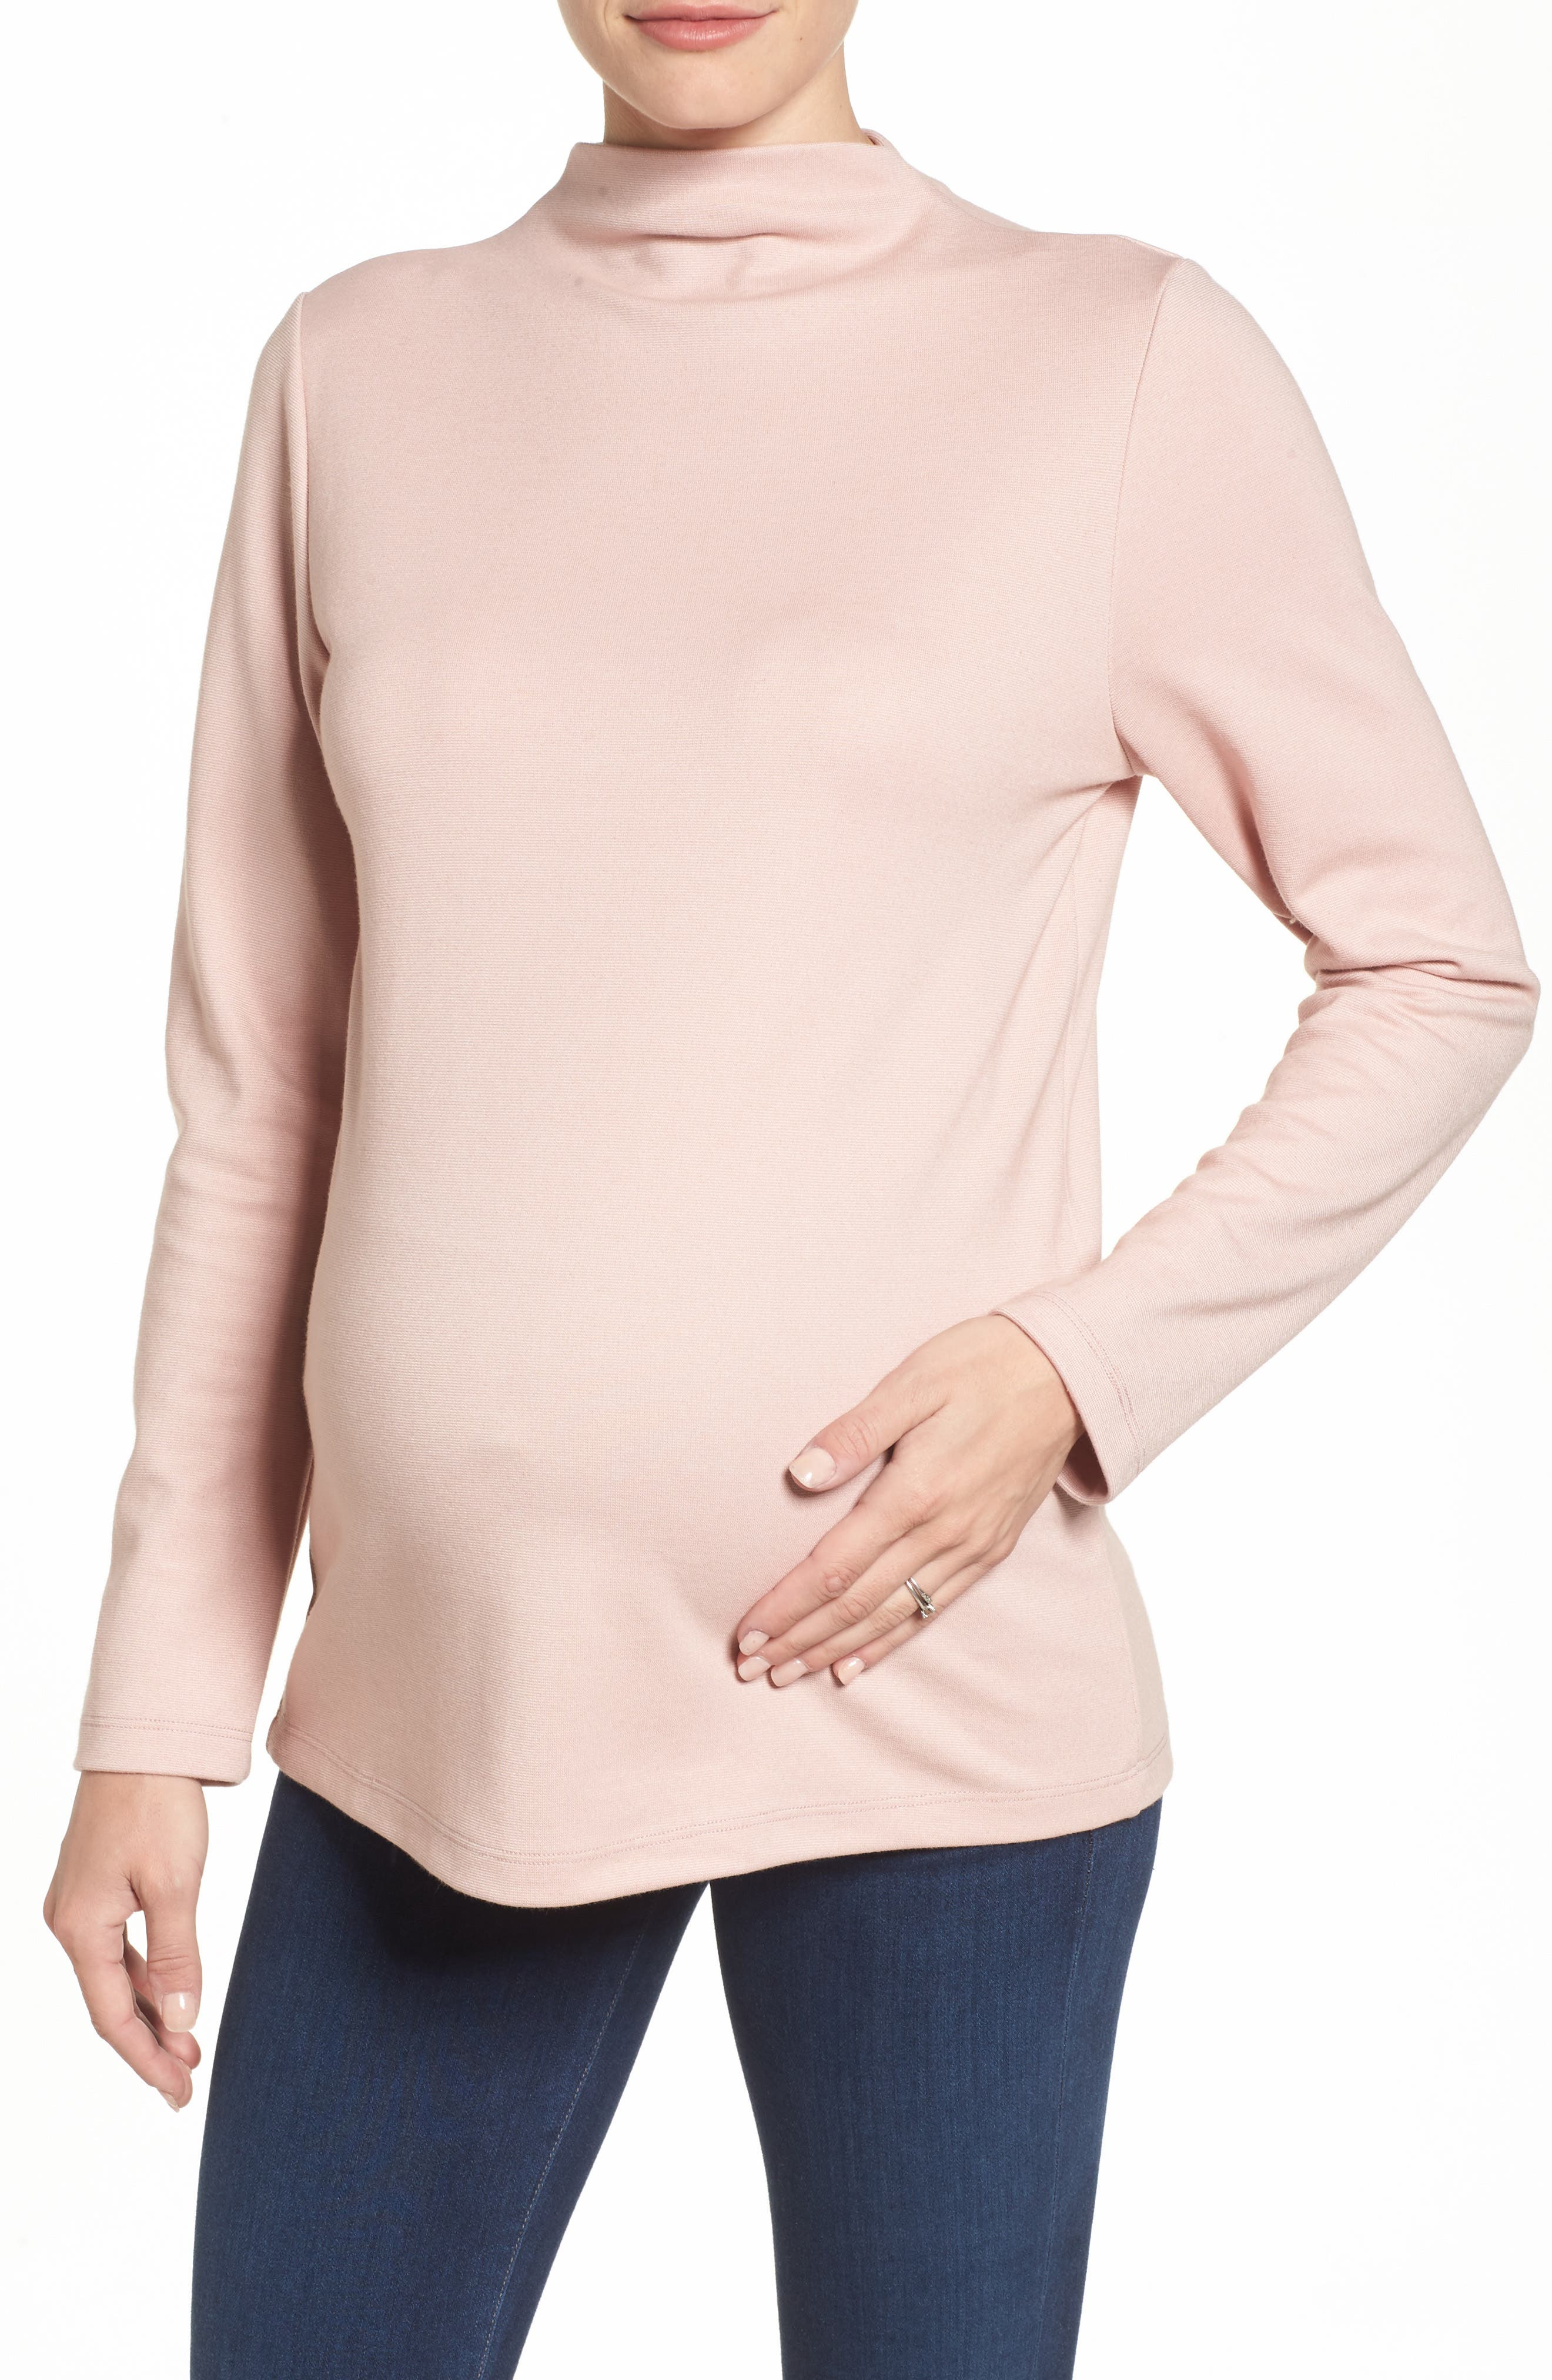 LAB40 Leah Maternity Top